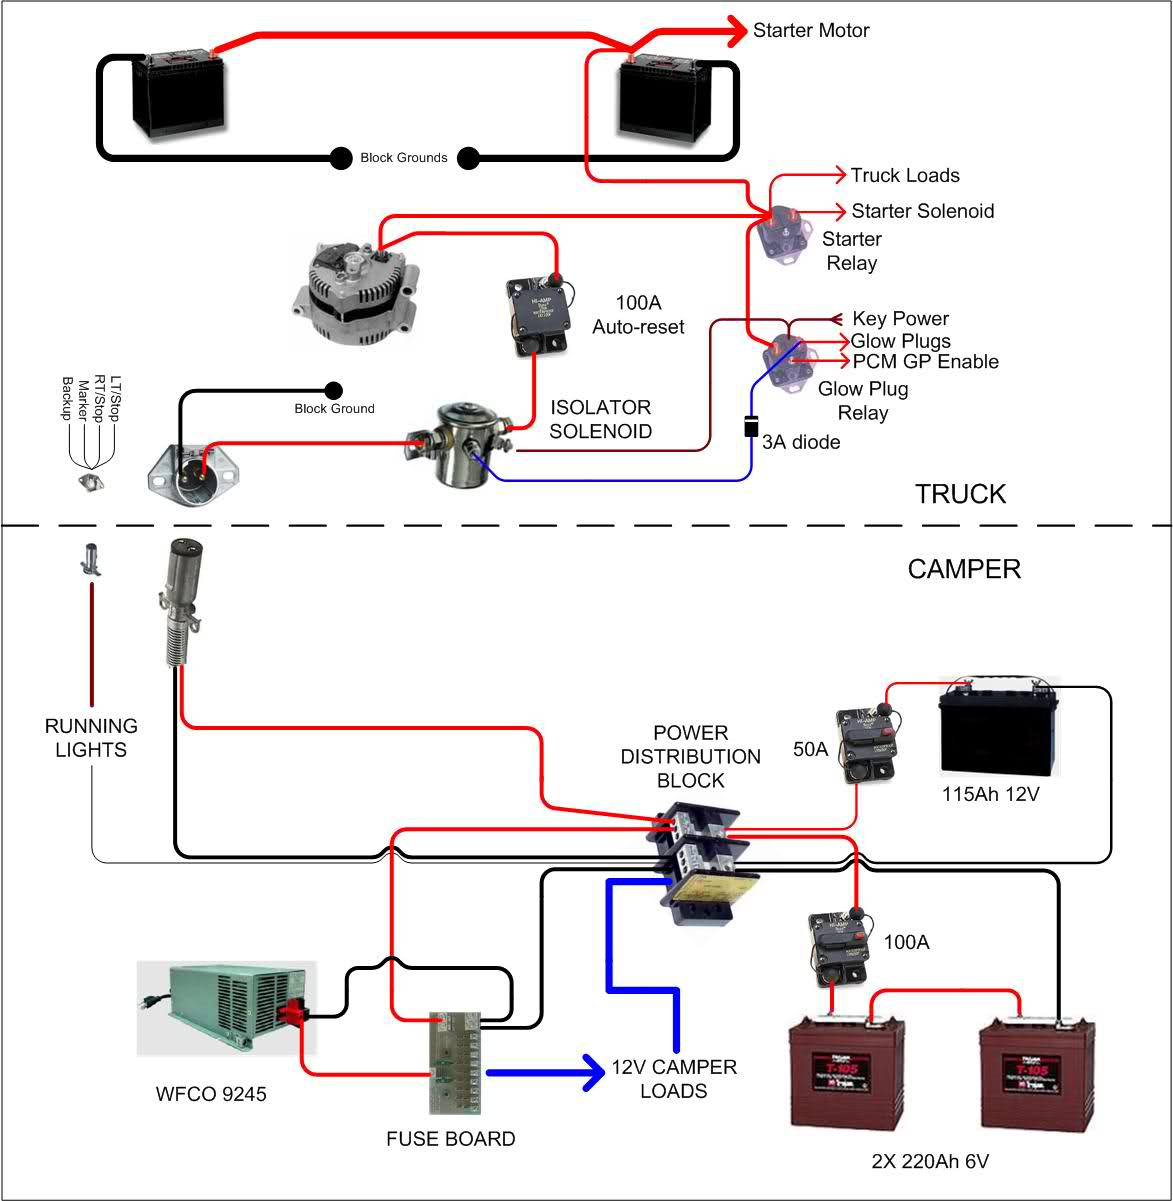 Travel Trailer Converter Wiring Diagram | Wiring Diagram - Travel Trailer Wiring Diagram